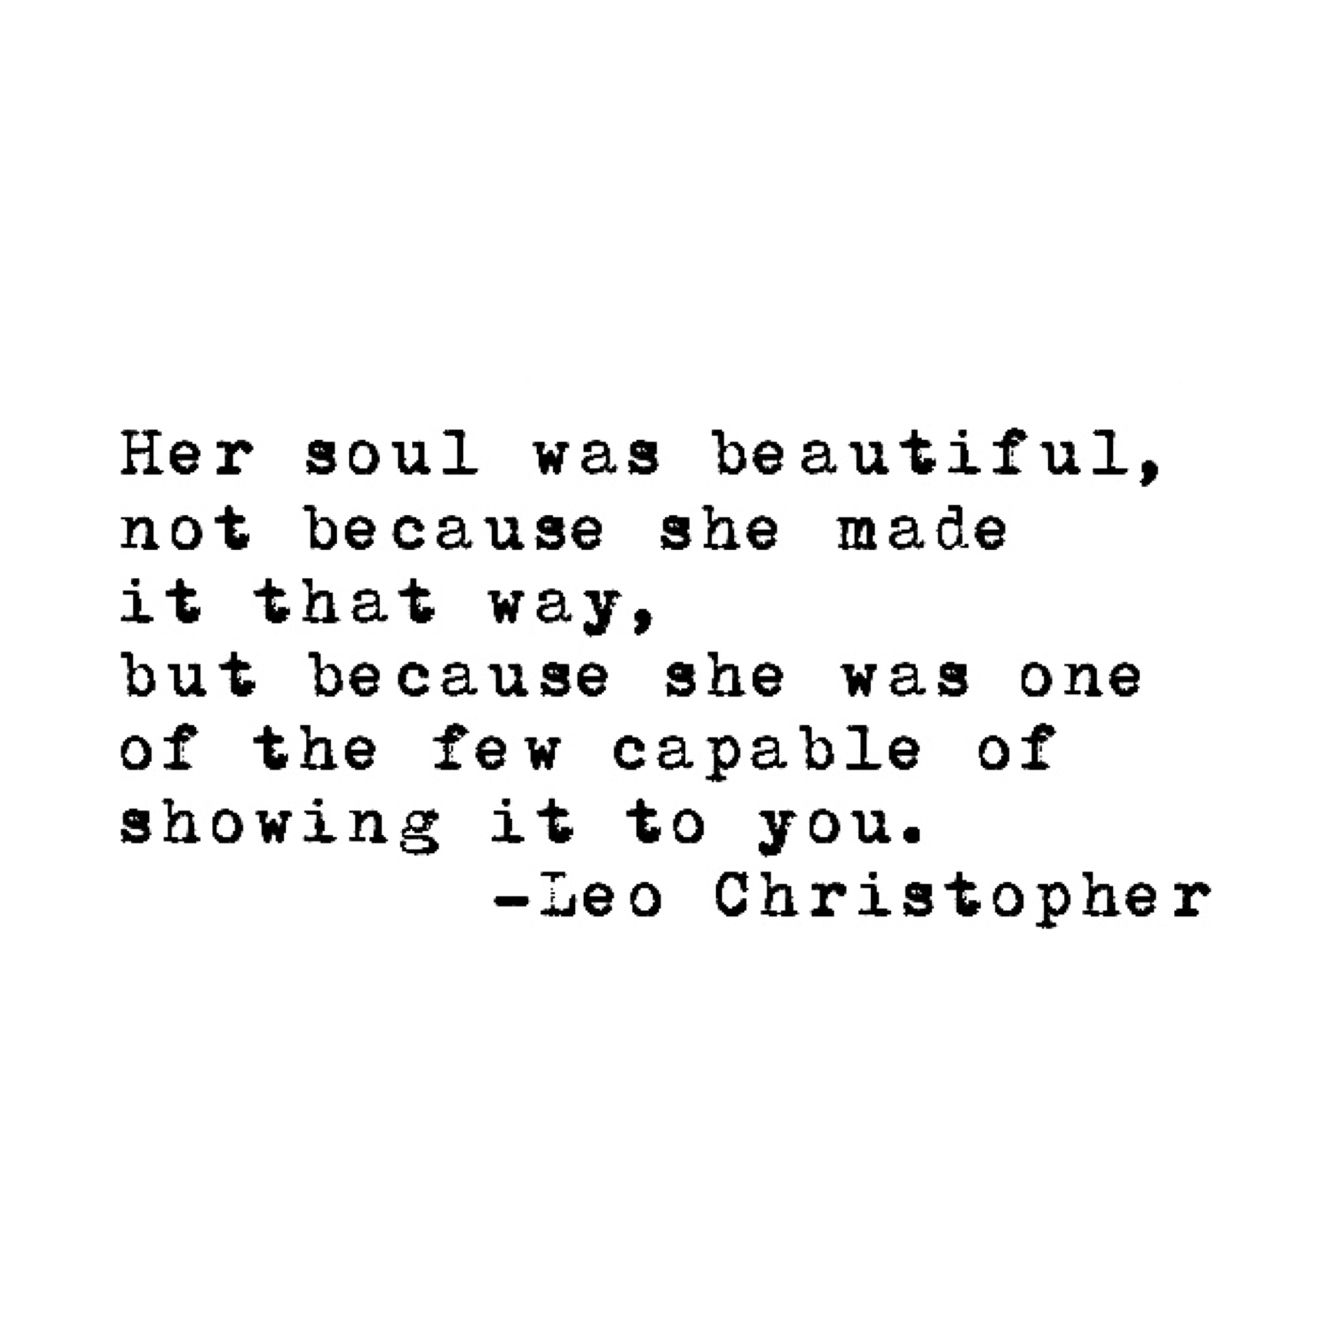 Beautiful Soul Quotes Leo Christopherbeautiful Soul. Words  Pinterest  Beautiful